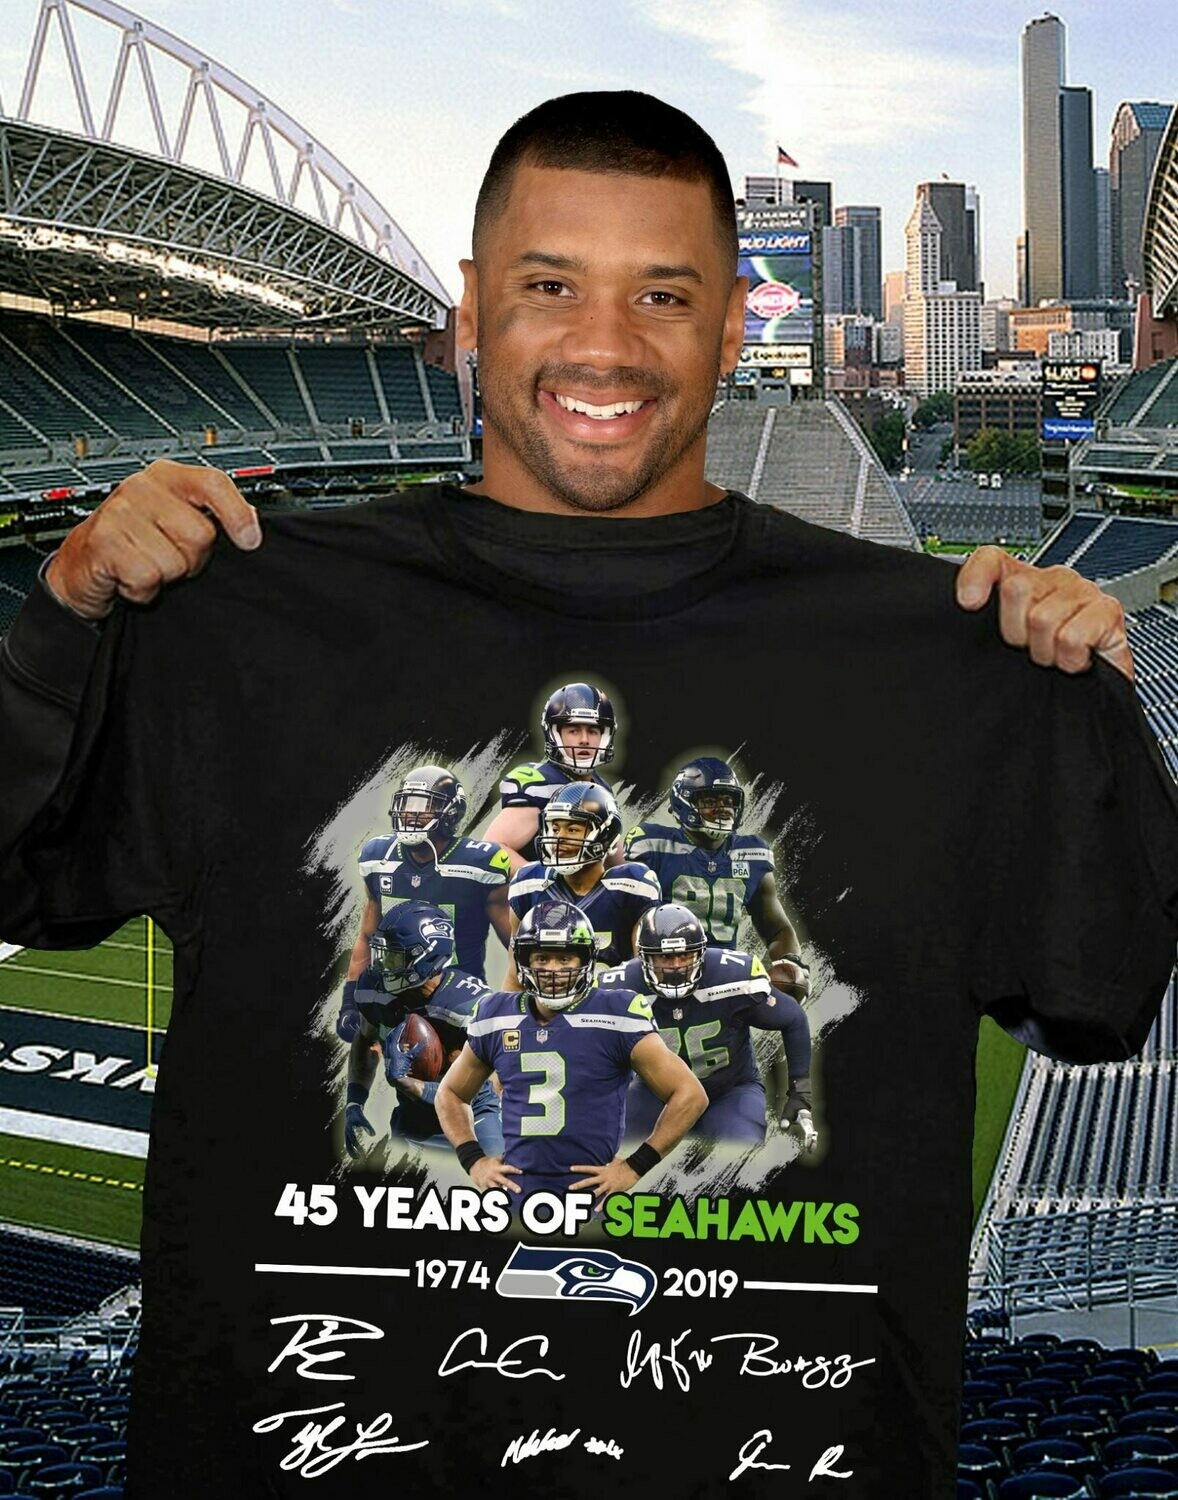 Vintage Seattle Seahawks T-shirt 45 Year Of Vintage Seattle Seahawks T-shirt